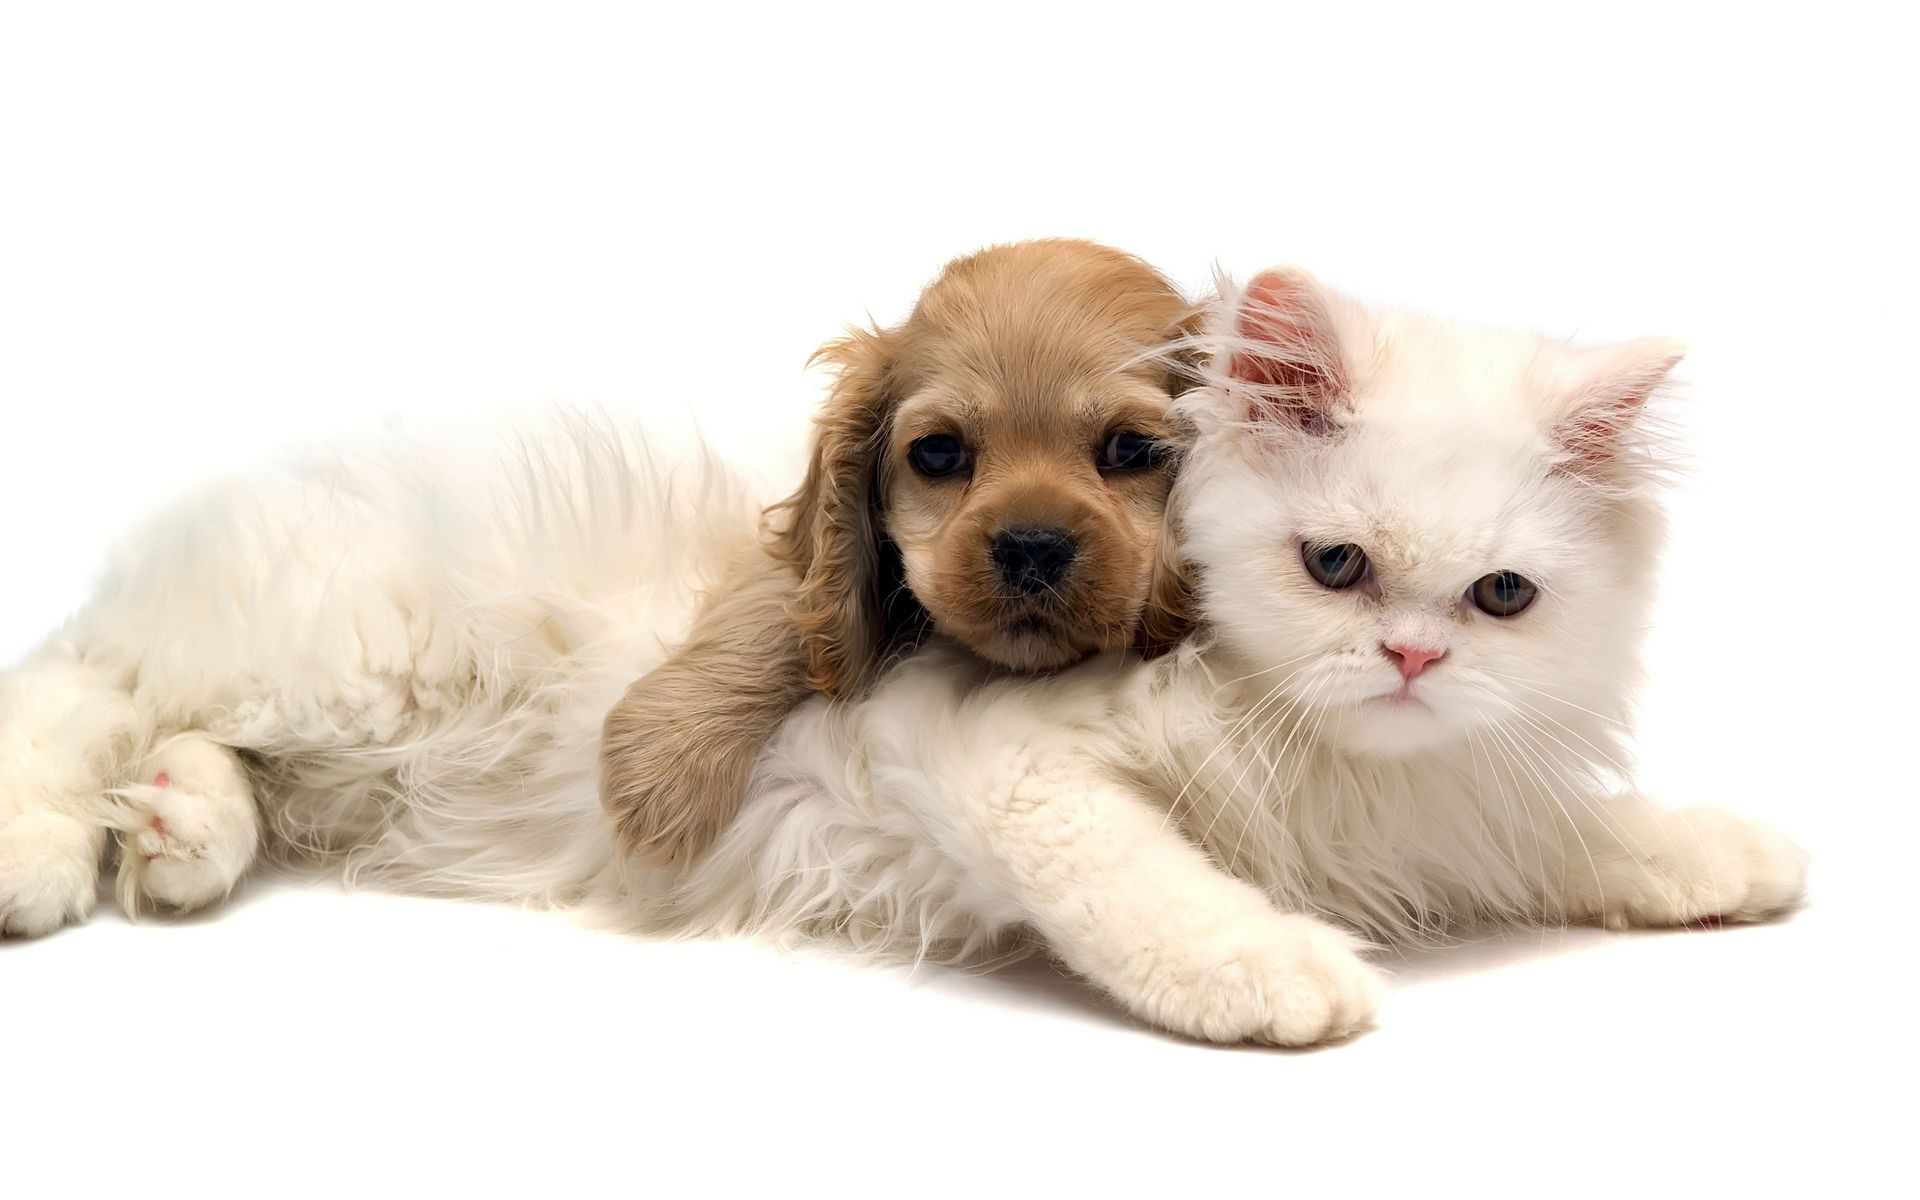 Cute Cat And Dog Hd Wallpapers Hd Wallpapers Pinterest Cats